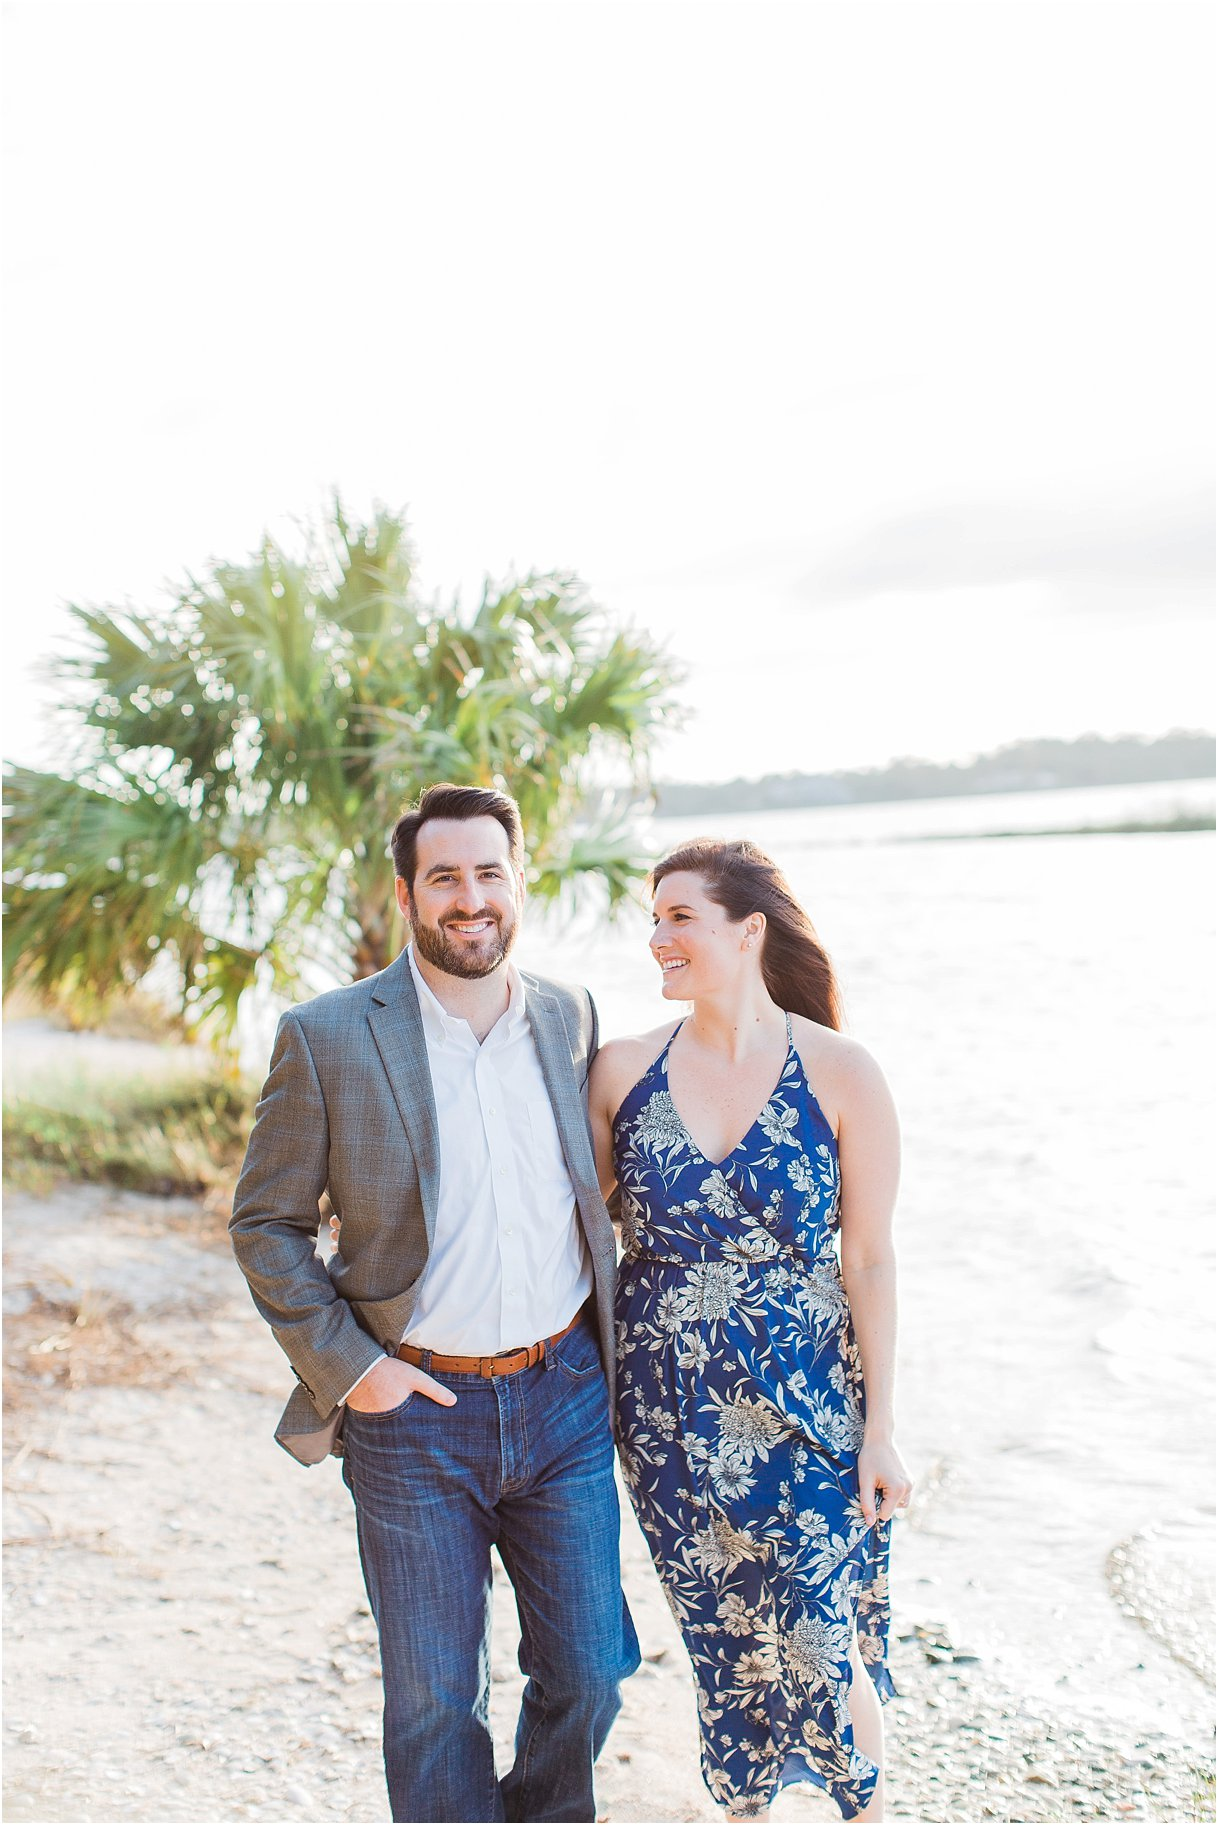 Tomoka Park Ormond Beach Florida Engagement Session Orlando Wedding Photographer PSJ Photography8.jpg